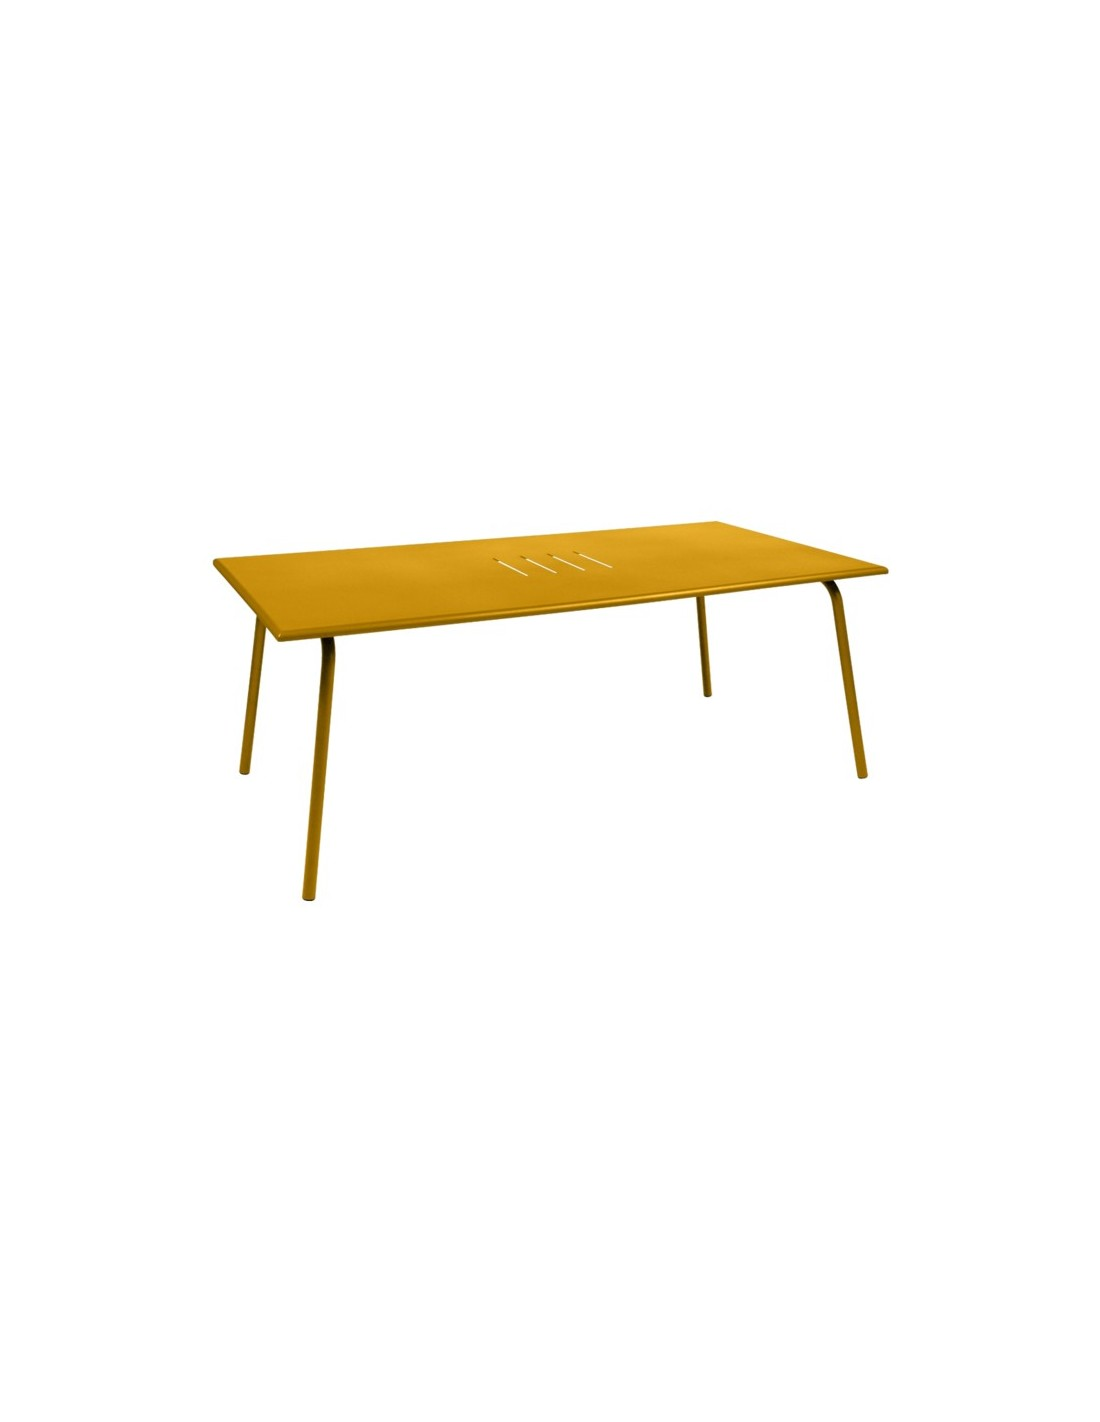 Table de jardin monceau 194x94 cm fermob for Table 8 personnes